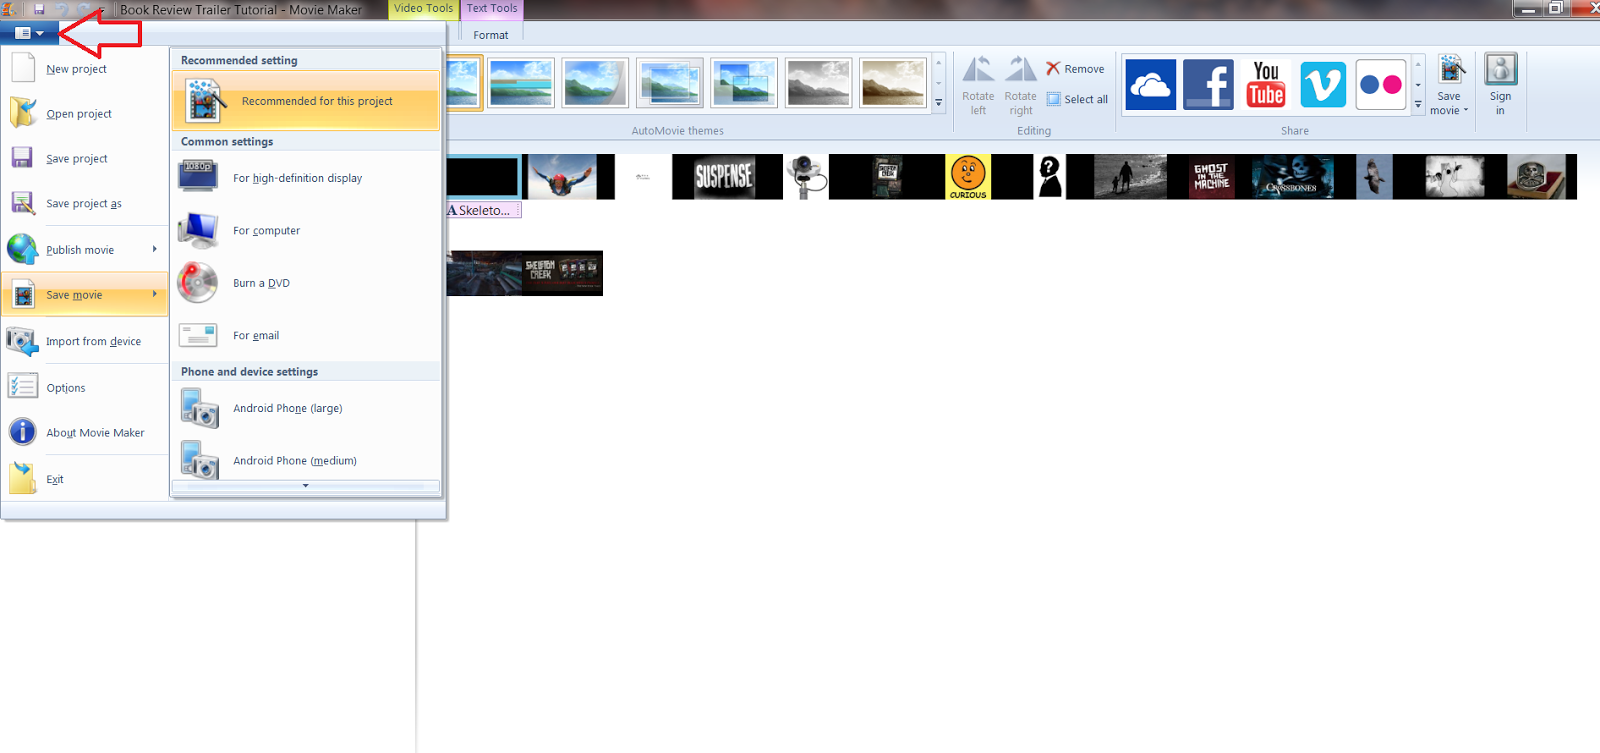 how to save movie in windows live movie maker for book review trailer